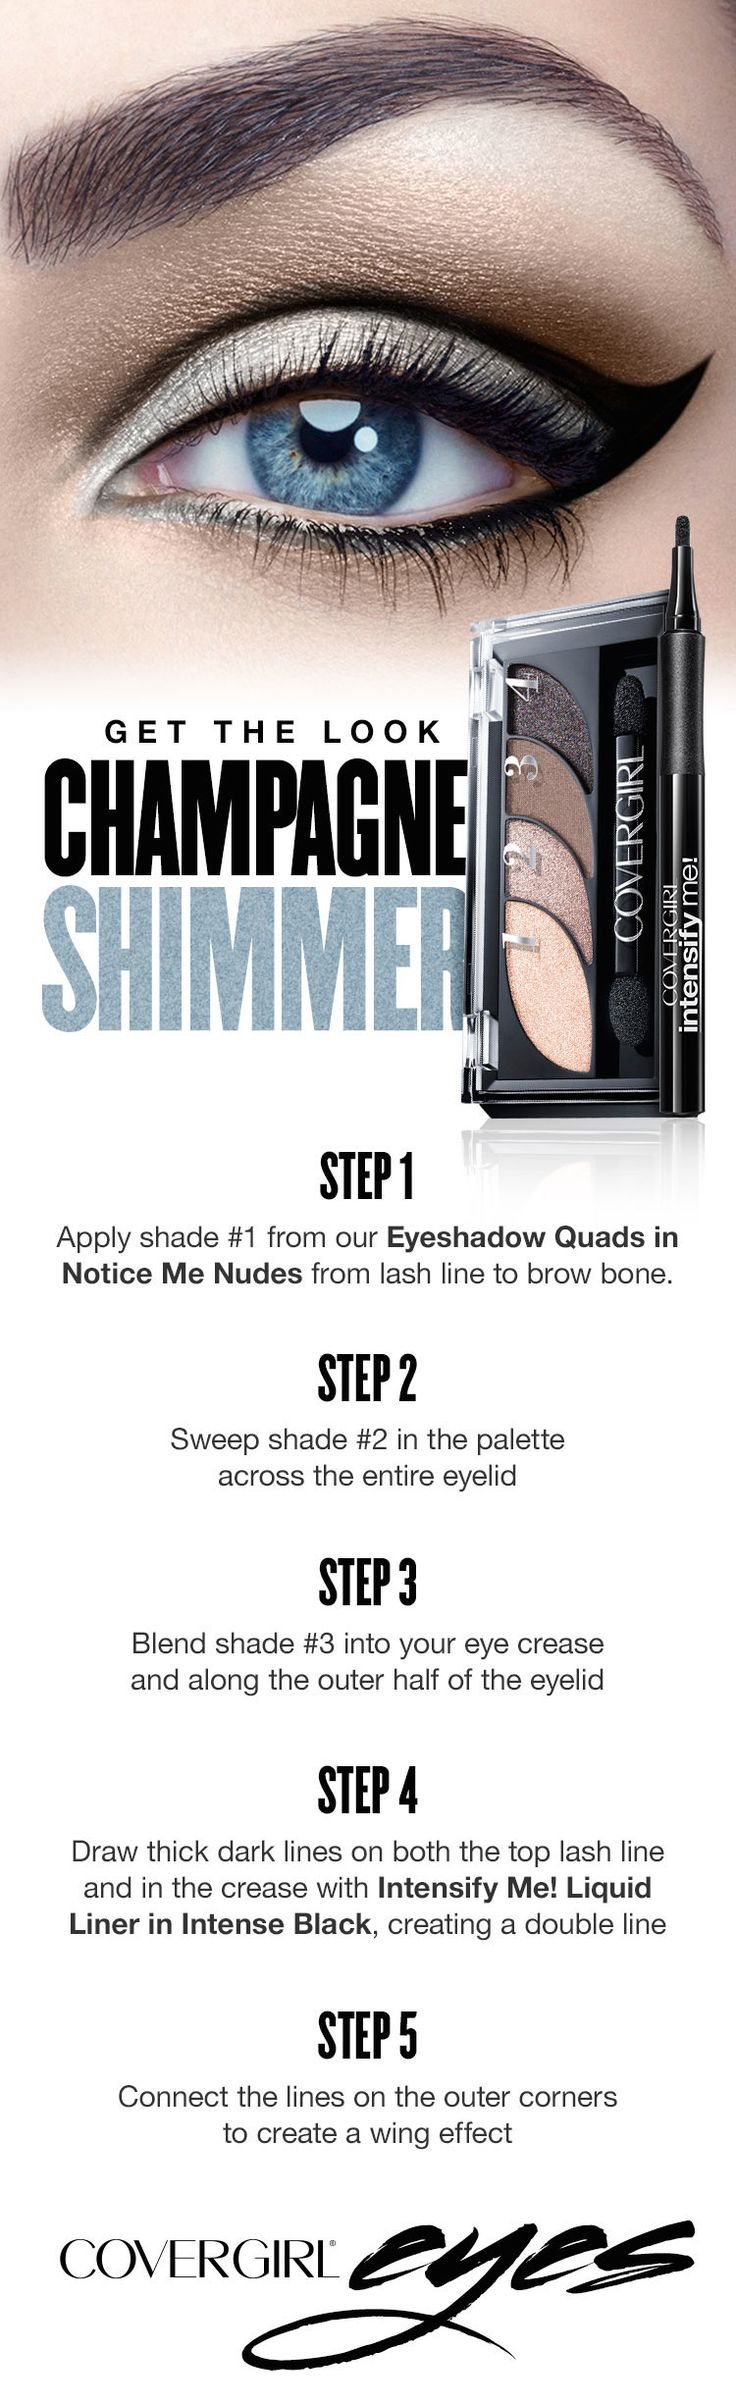 'Tis the season for champagne shimmer! Try this simple step-by-step tutorial to create a dramatic eye look for any holiday party featuring COVERGIRL'S Eye Quads in Notice Me Nudes and Intensify Me! Liquid Liner in Intense black.